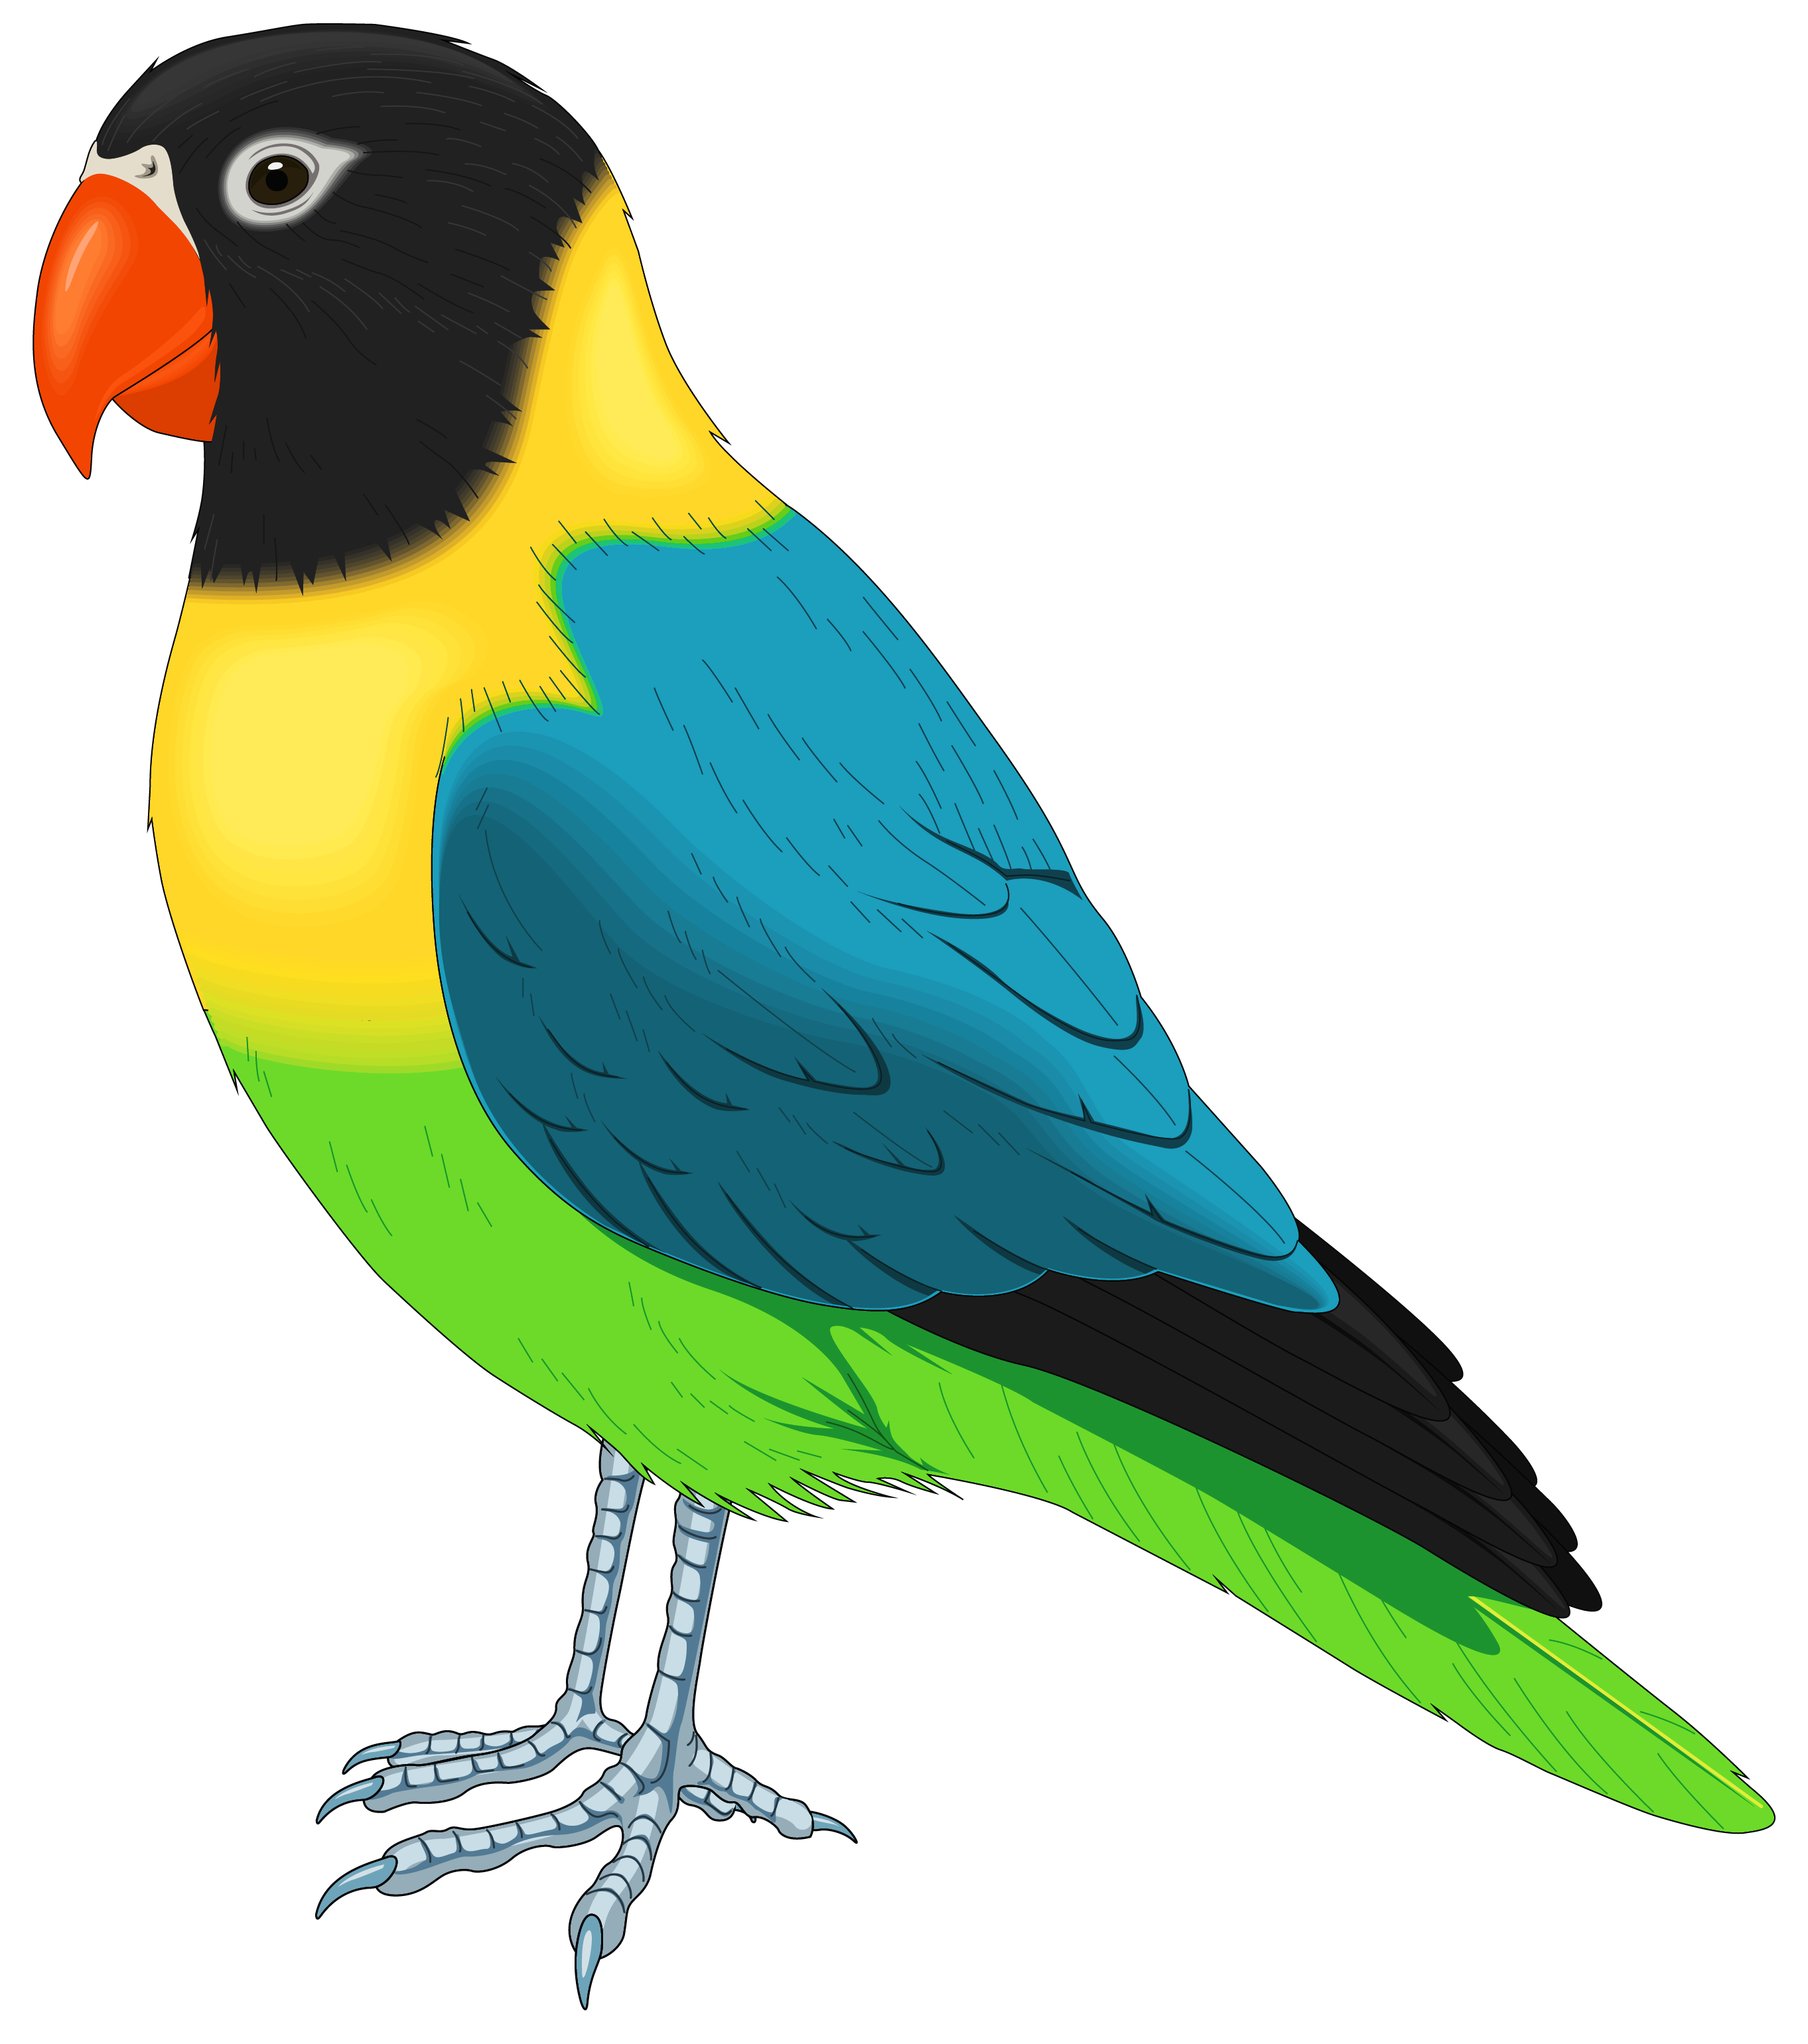 Parrot Bird Clipart at GetDrawings com | Free for personal